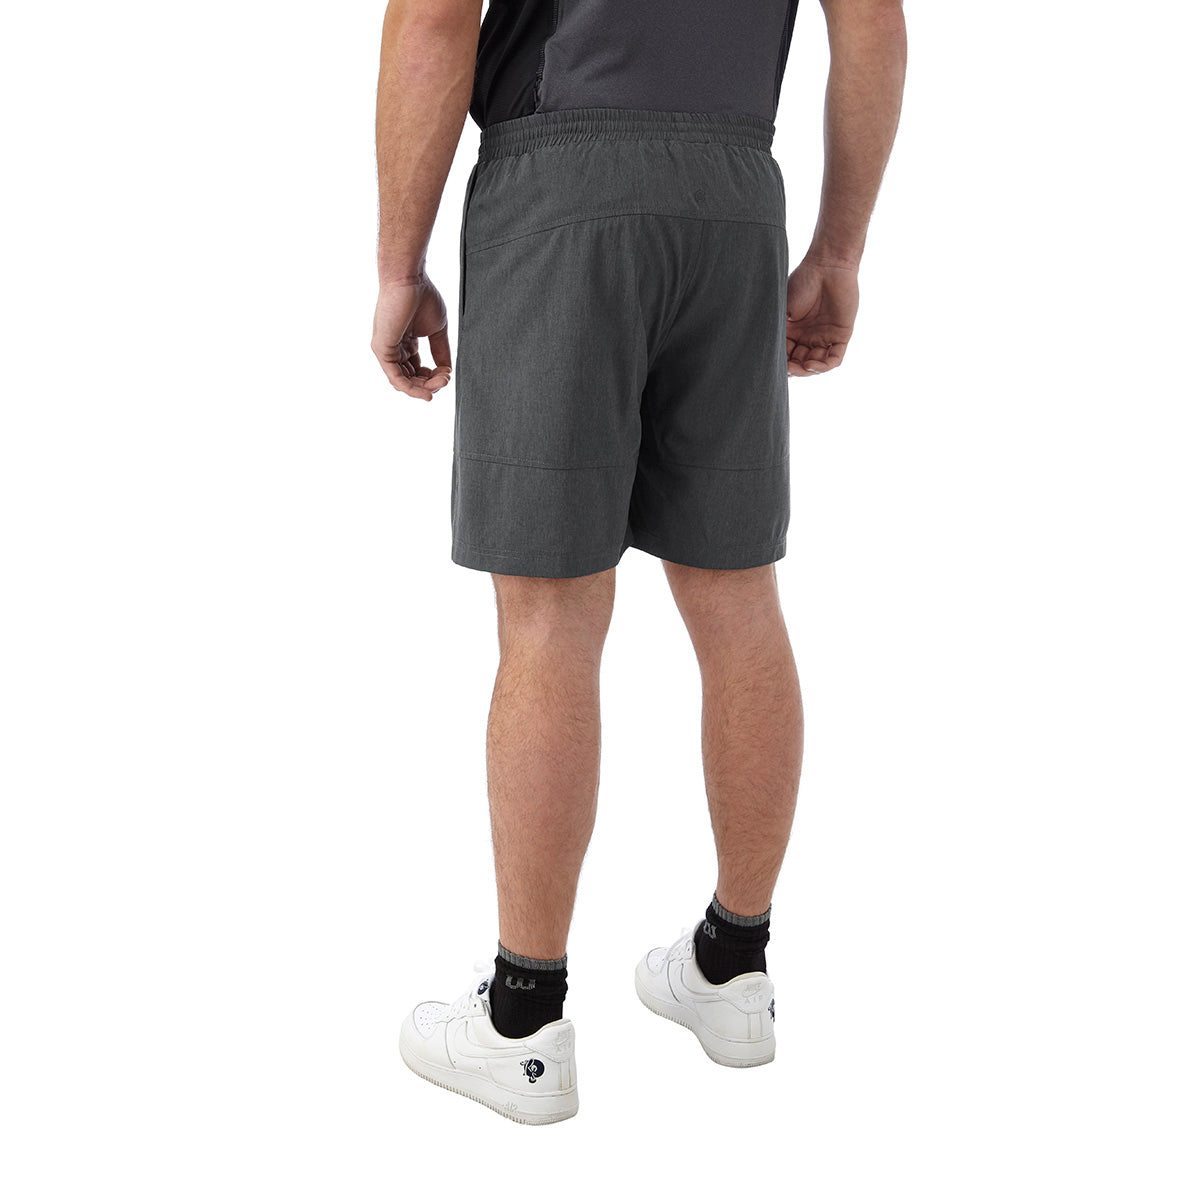 Marathon Mens Performance Shorts - Grey Marl image 4